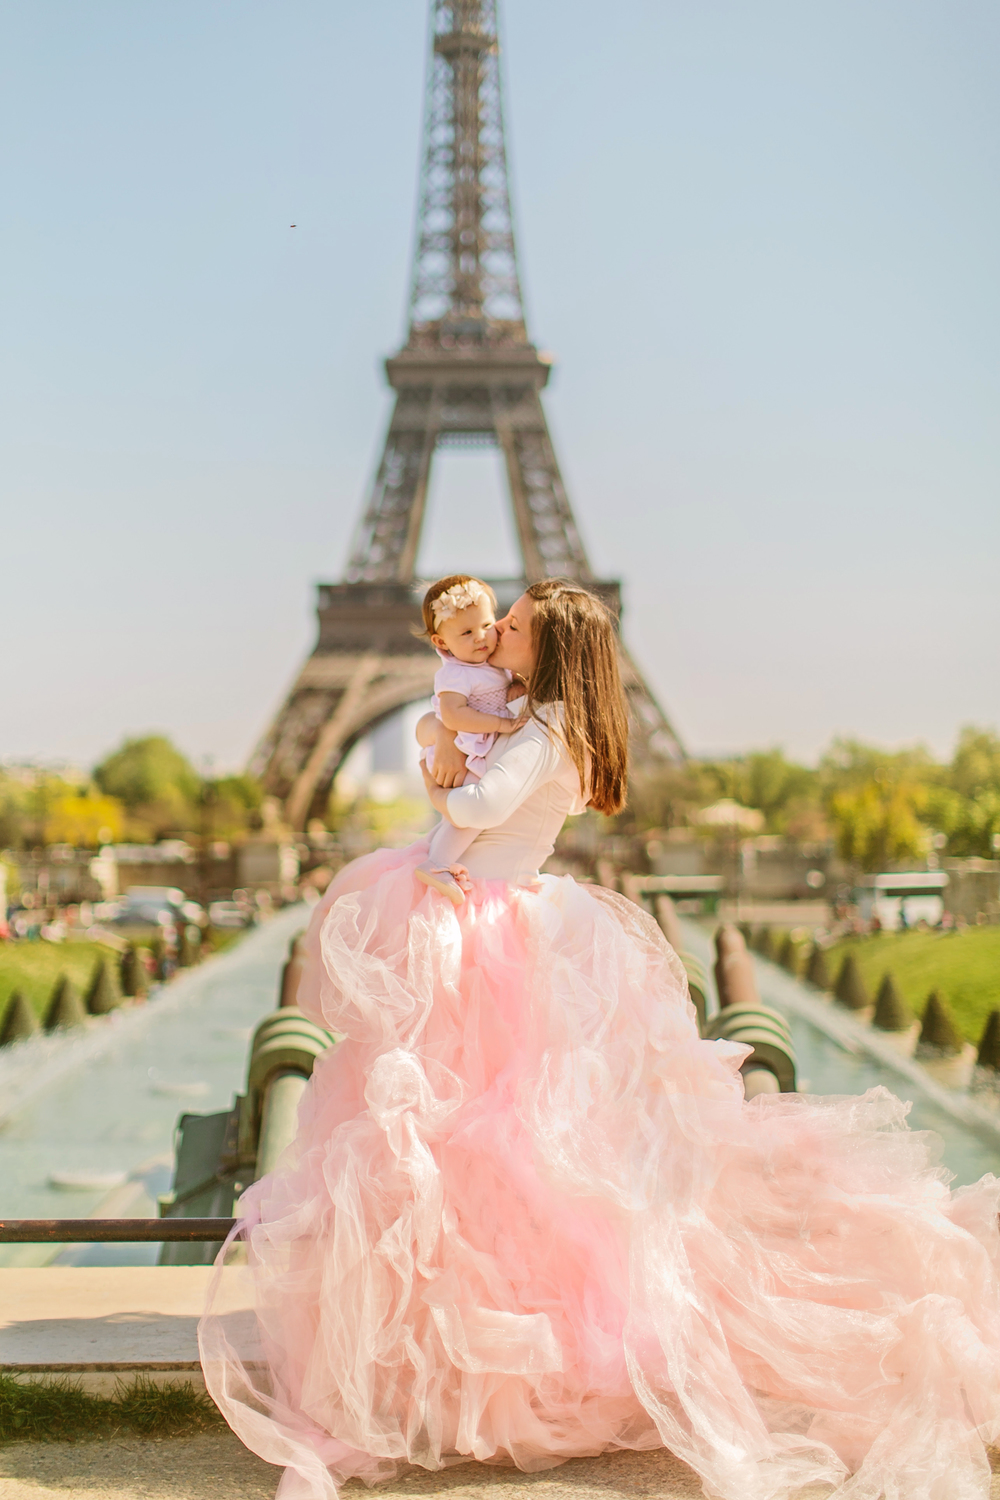 aspiring_kennedy_stacy_reeves_eiffel_tower_photoshoot